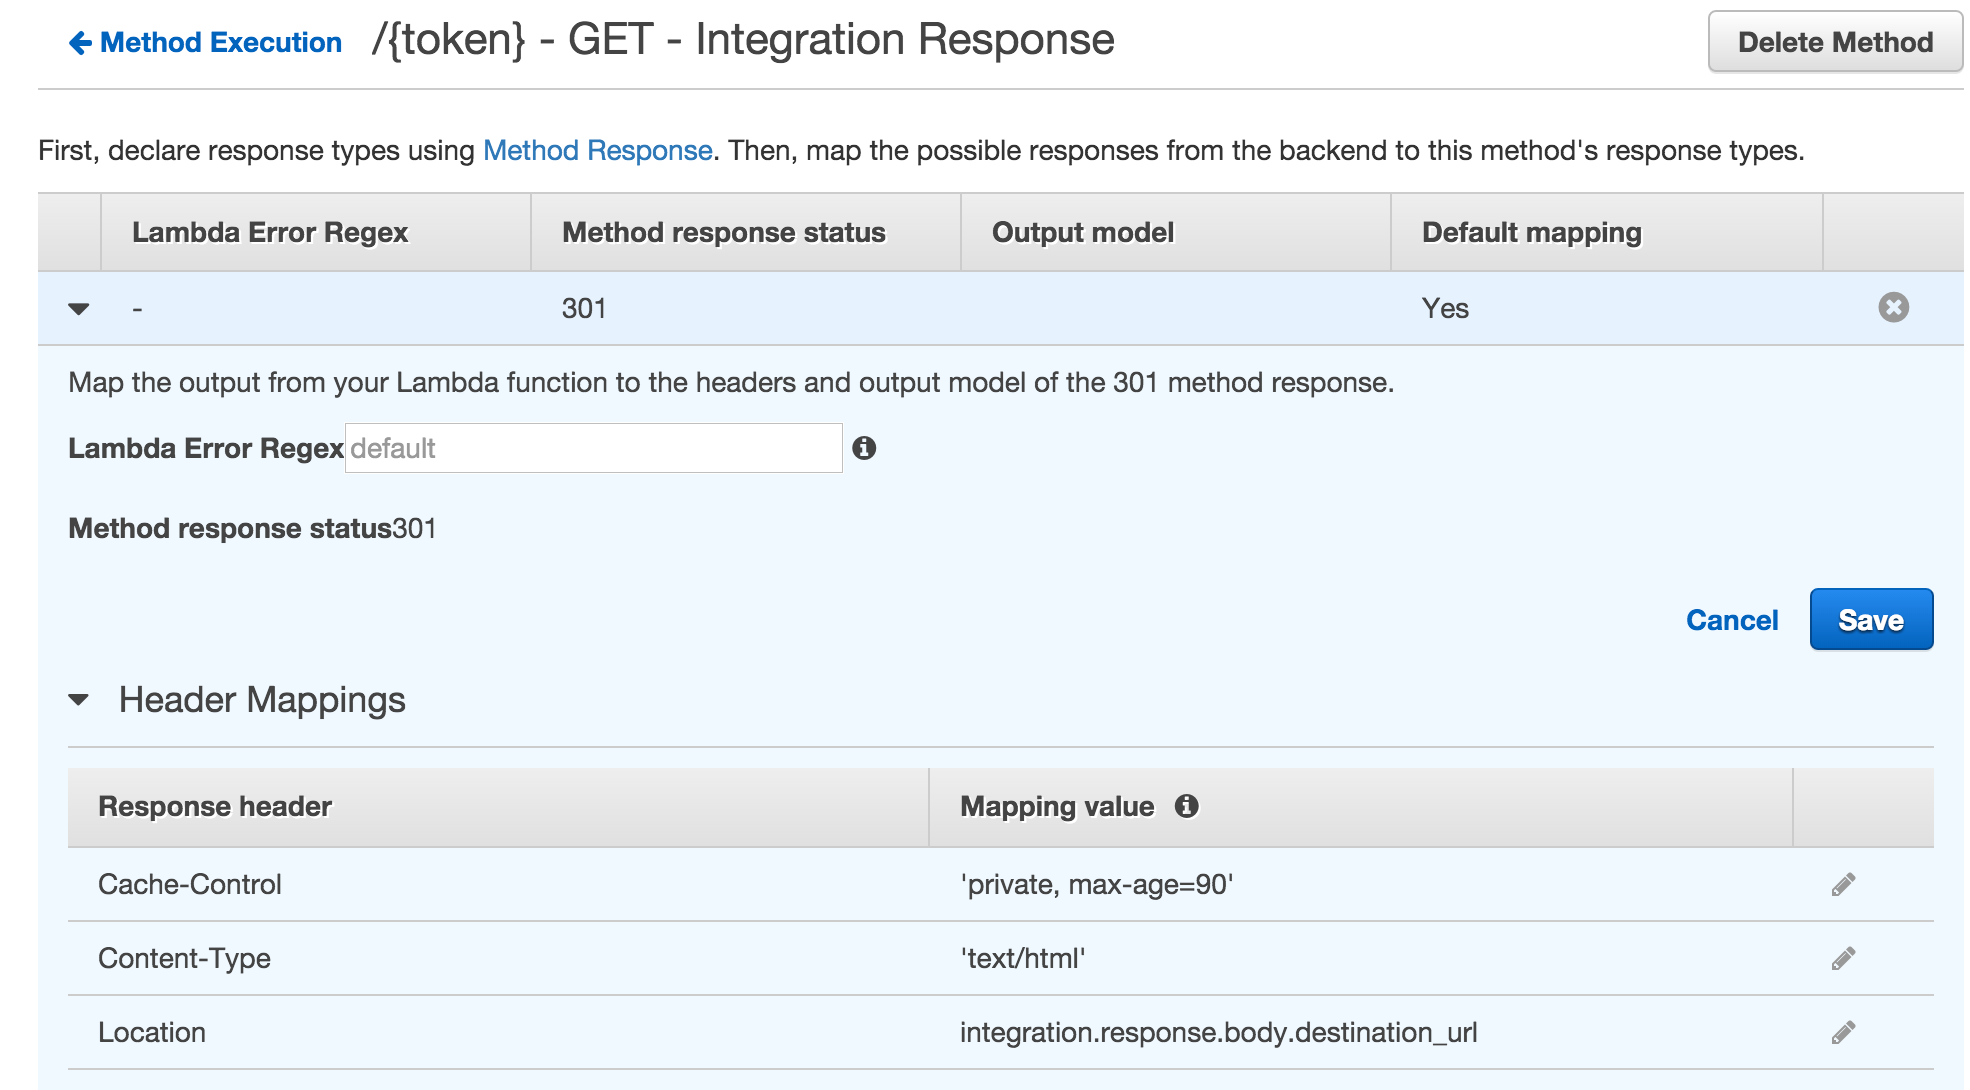 /{token} endpoint GET method Integration Response settings